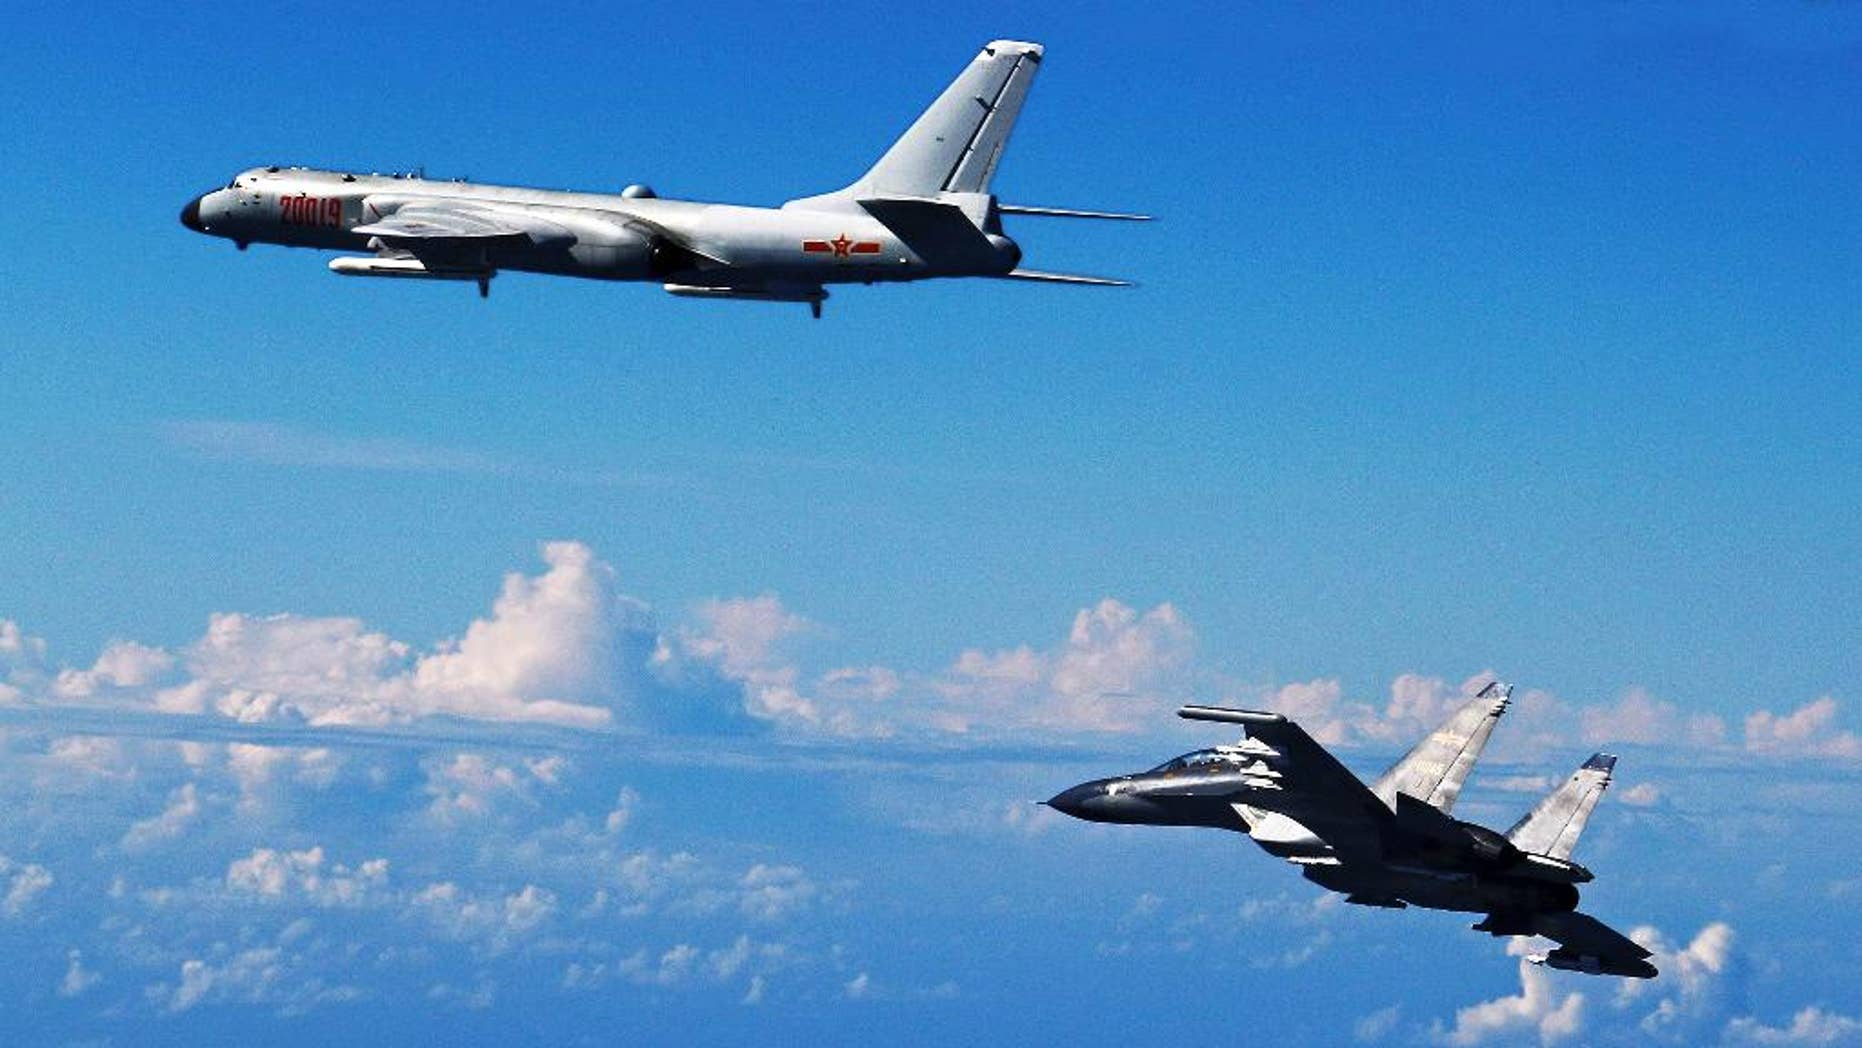 FILE - In this Sept. 25, 2016 file photo released by Xinhua News Agency, Chinese People's Liberation Army Air Force Su-30 fighter, right, flies along with a H-6K bomber as they take part in a drill near the East China Sea. China patrolled the waters of a series of hotly contested islands on Sunday, Dec. 11, 2016, a day after staging a flyover of two strategically important waterways near Taiwan and Japan. (Shao Jing/Xinhua via AP, File)